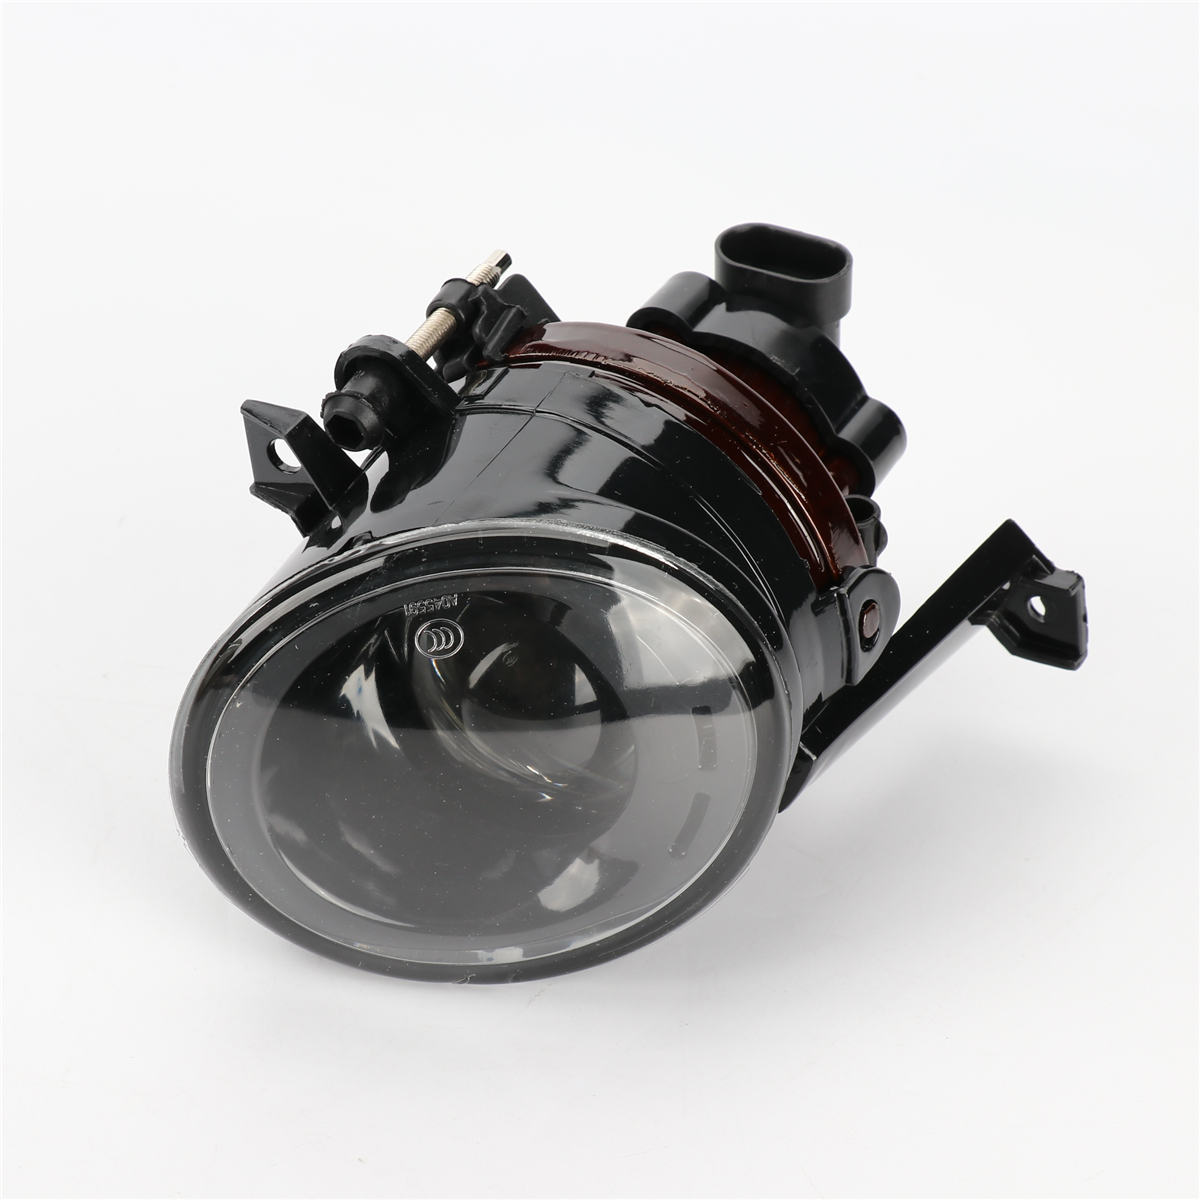 1PCS Right Front Bumper Projection Convex Lens Headlights Fog Lamp For VW Tiguan EOS Polo Touran Golf MK6 1T0941700 runmade for vw 2010 2011 2012 tiguan clear lens bumper fog driving light fog lamp right side 5nd 941 700